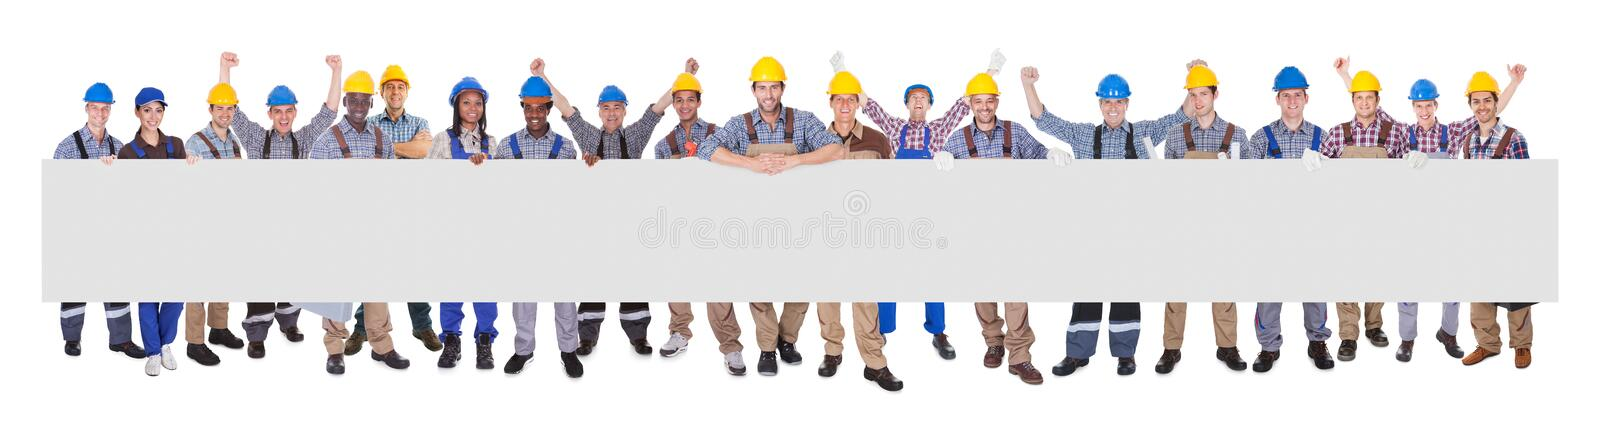 Successful manual workers with blank billboard royalty free stock image